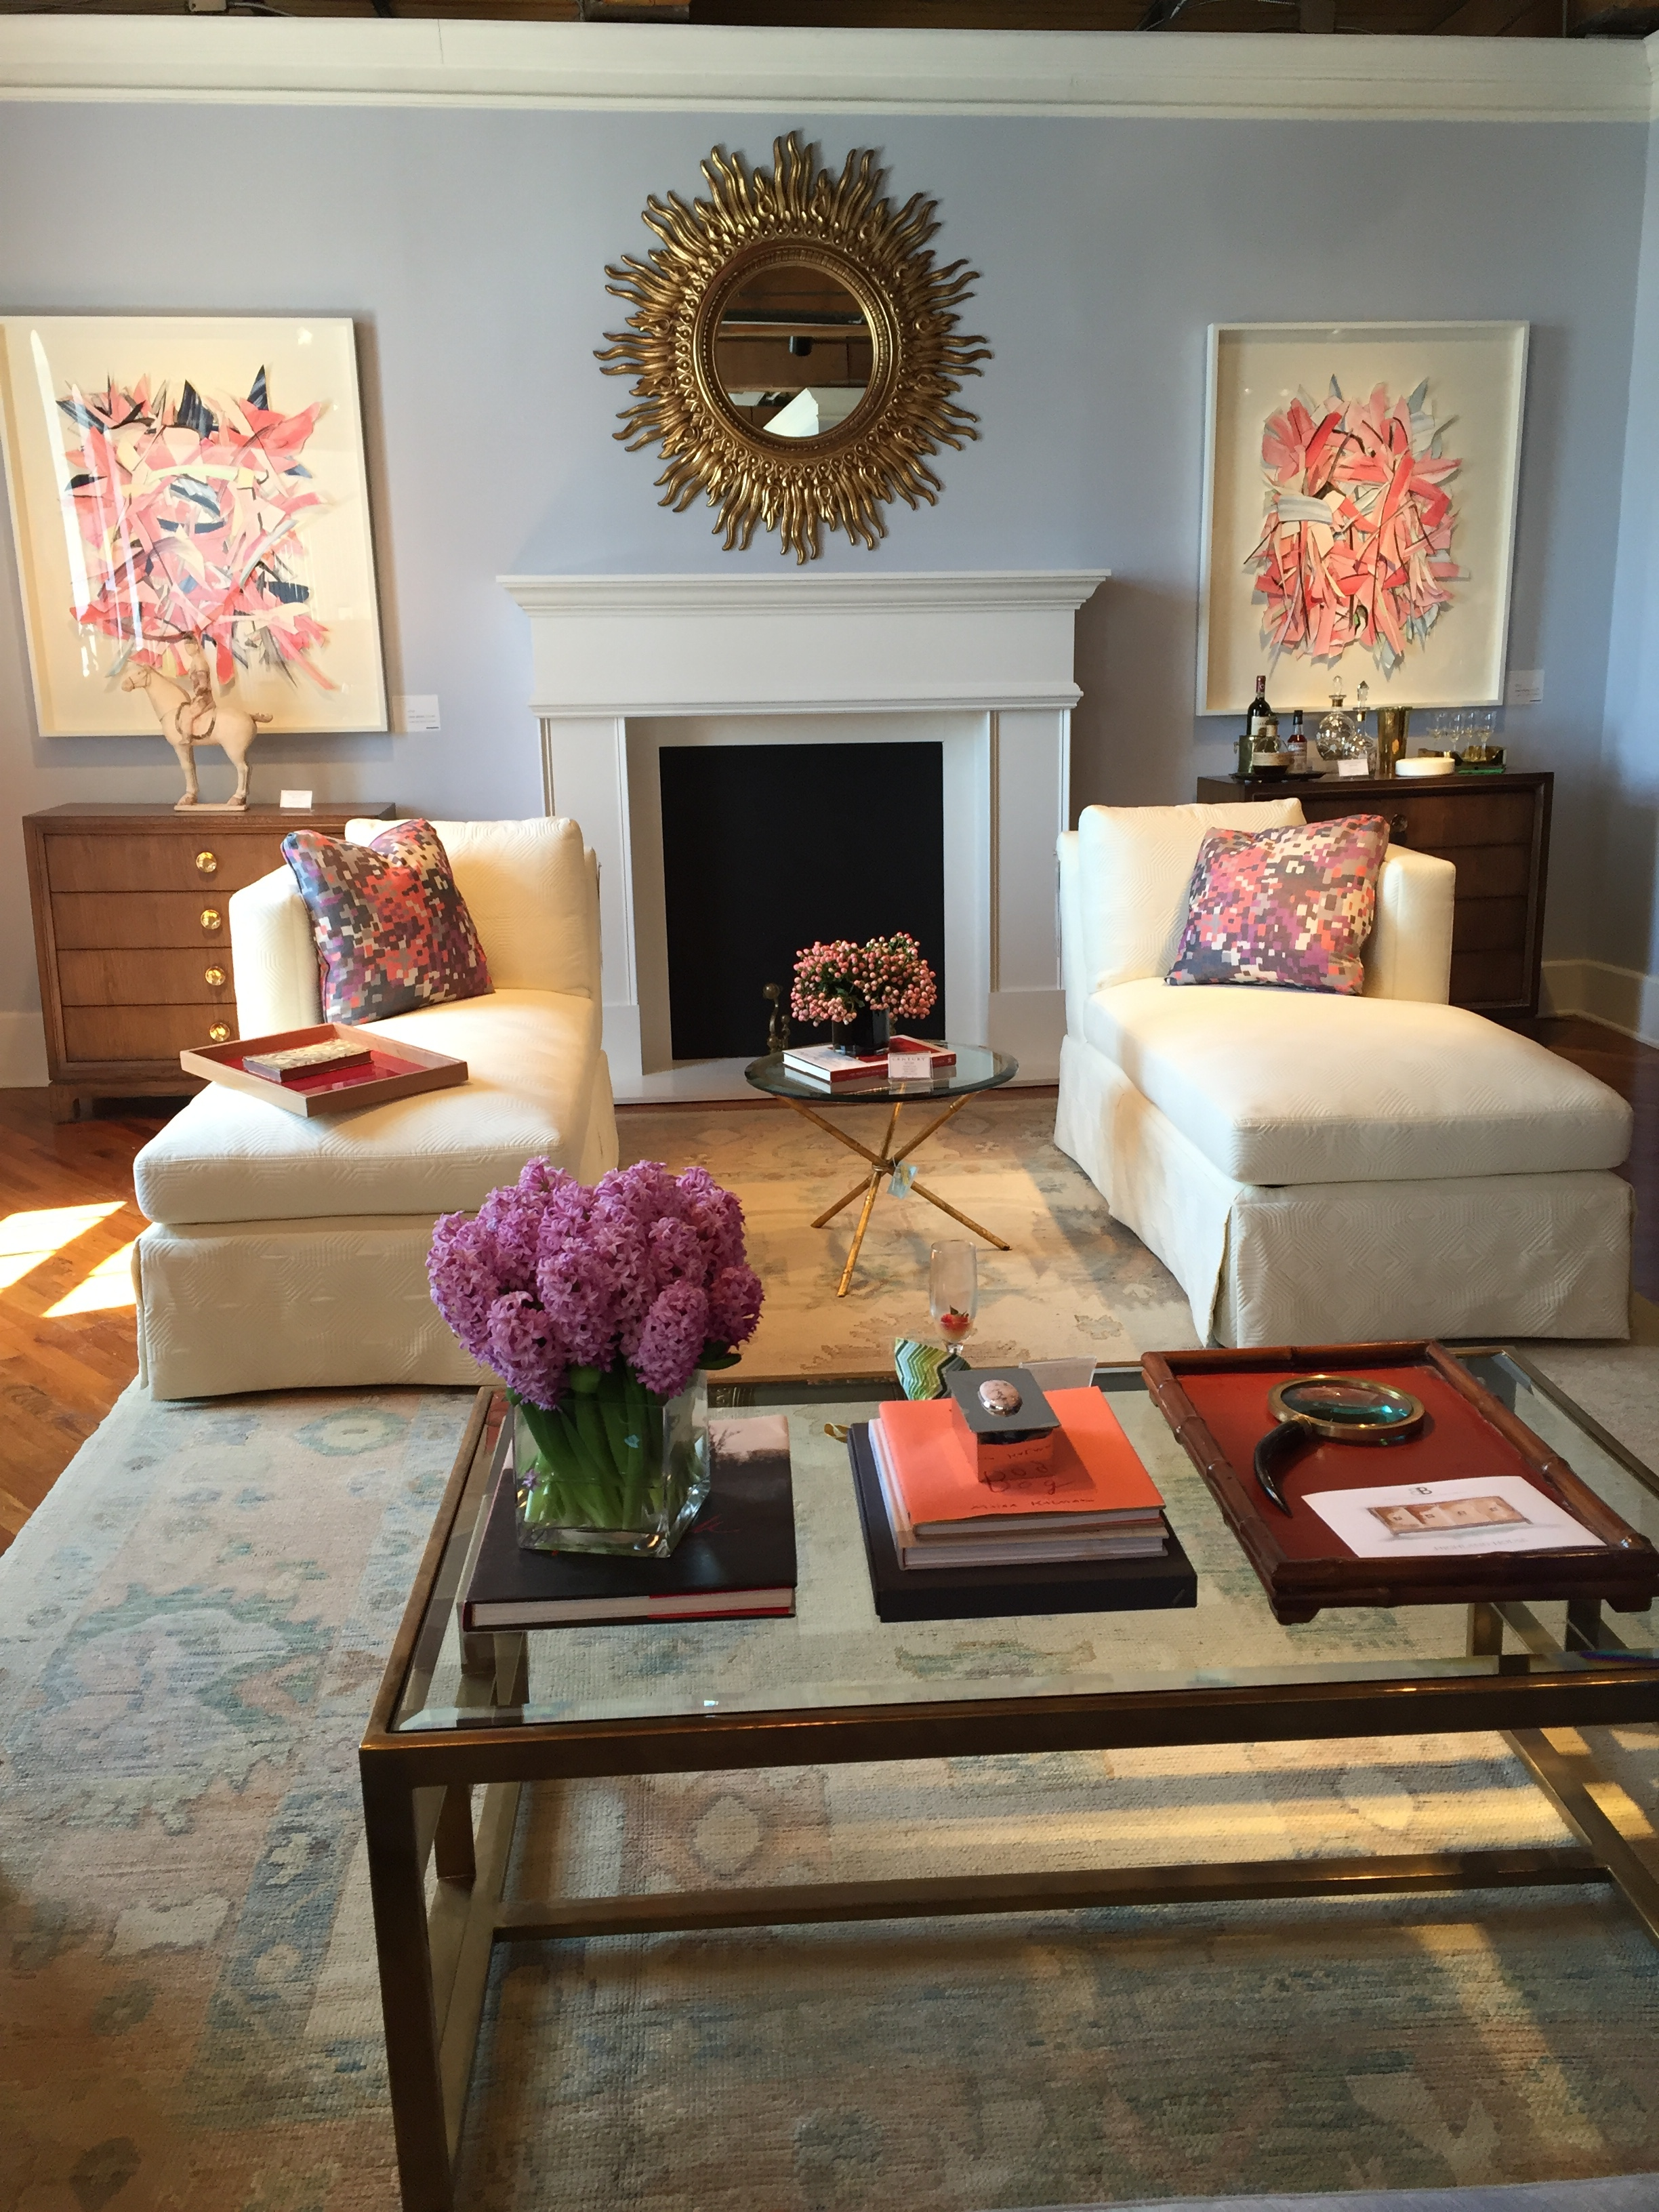 launch in High Point was that of stylish Interior designer Barrie  Benson  who recently debuted a 12 piece furniture collection with Highland  House. A DESIGN COLLABORATION BY BARRIE BENSON FOR HIGHLAND HOUSE   www